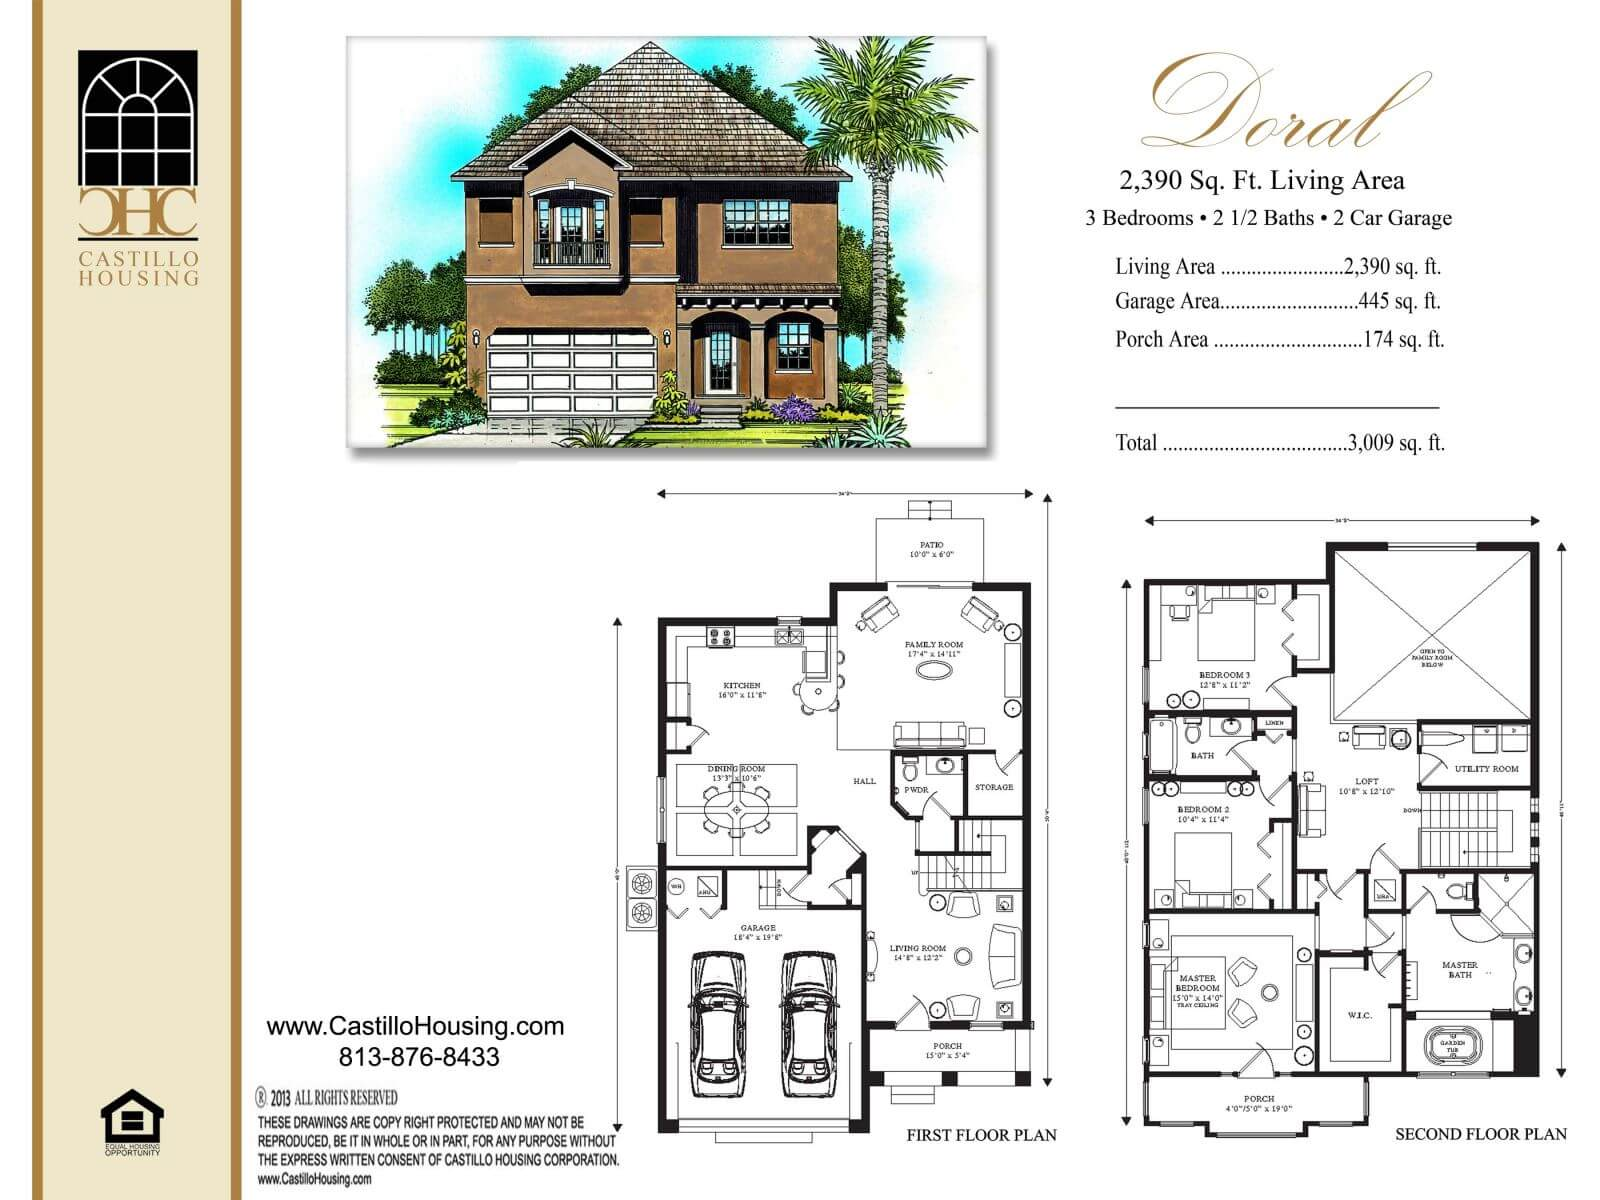 Floor Plans,2,001 SQ FT TO 2,500 SQ FT,1029